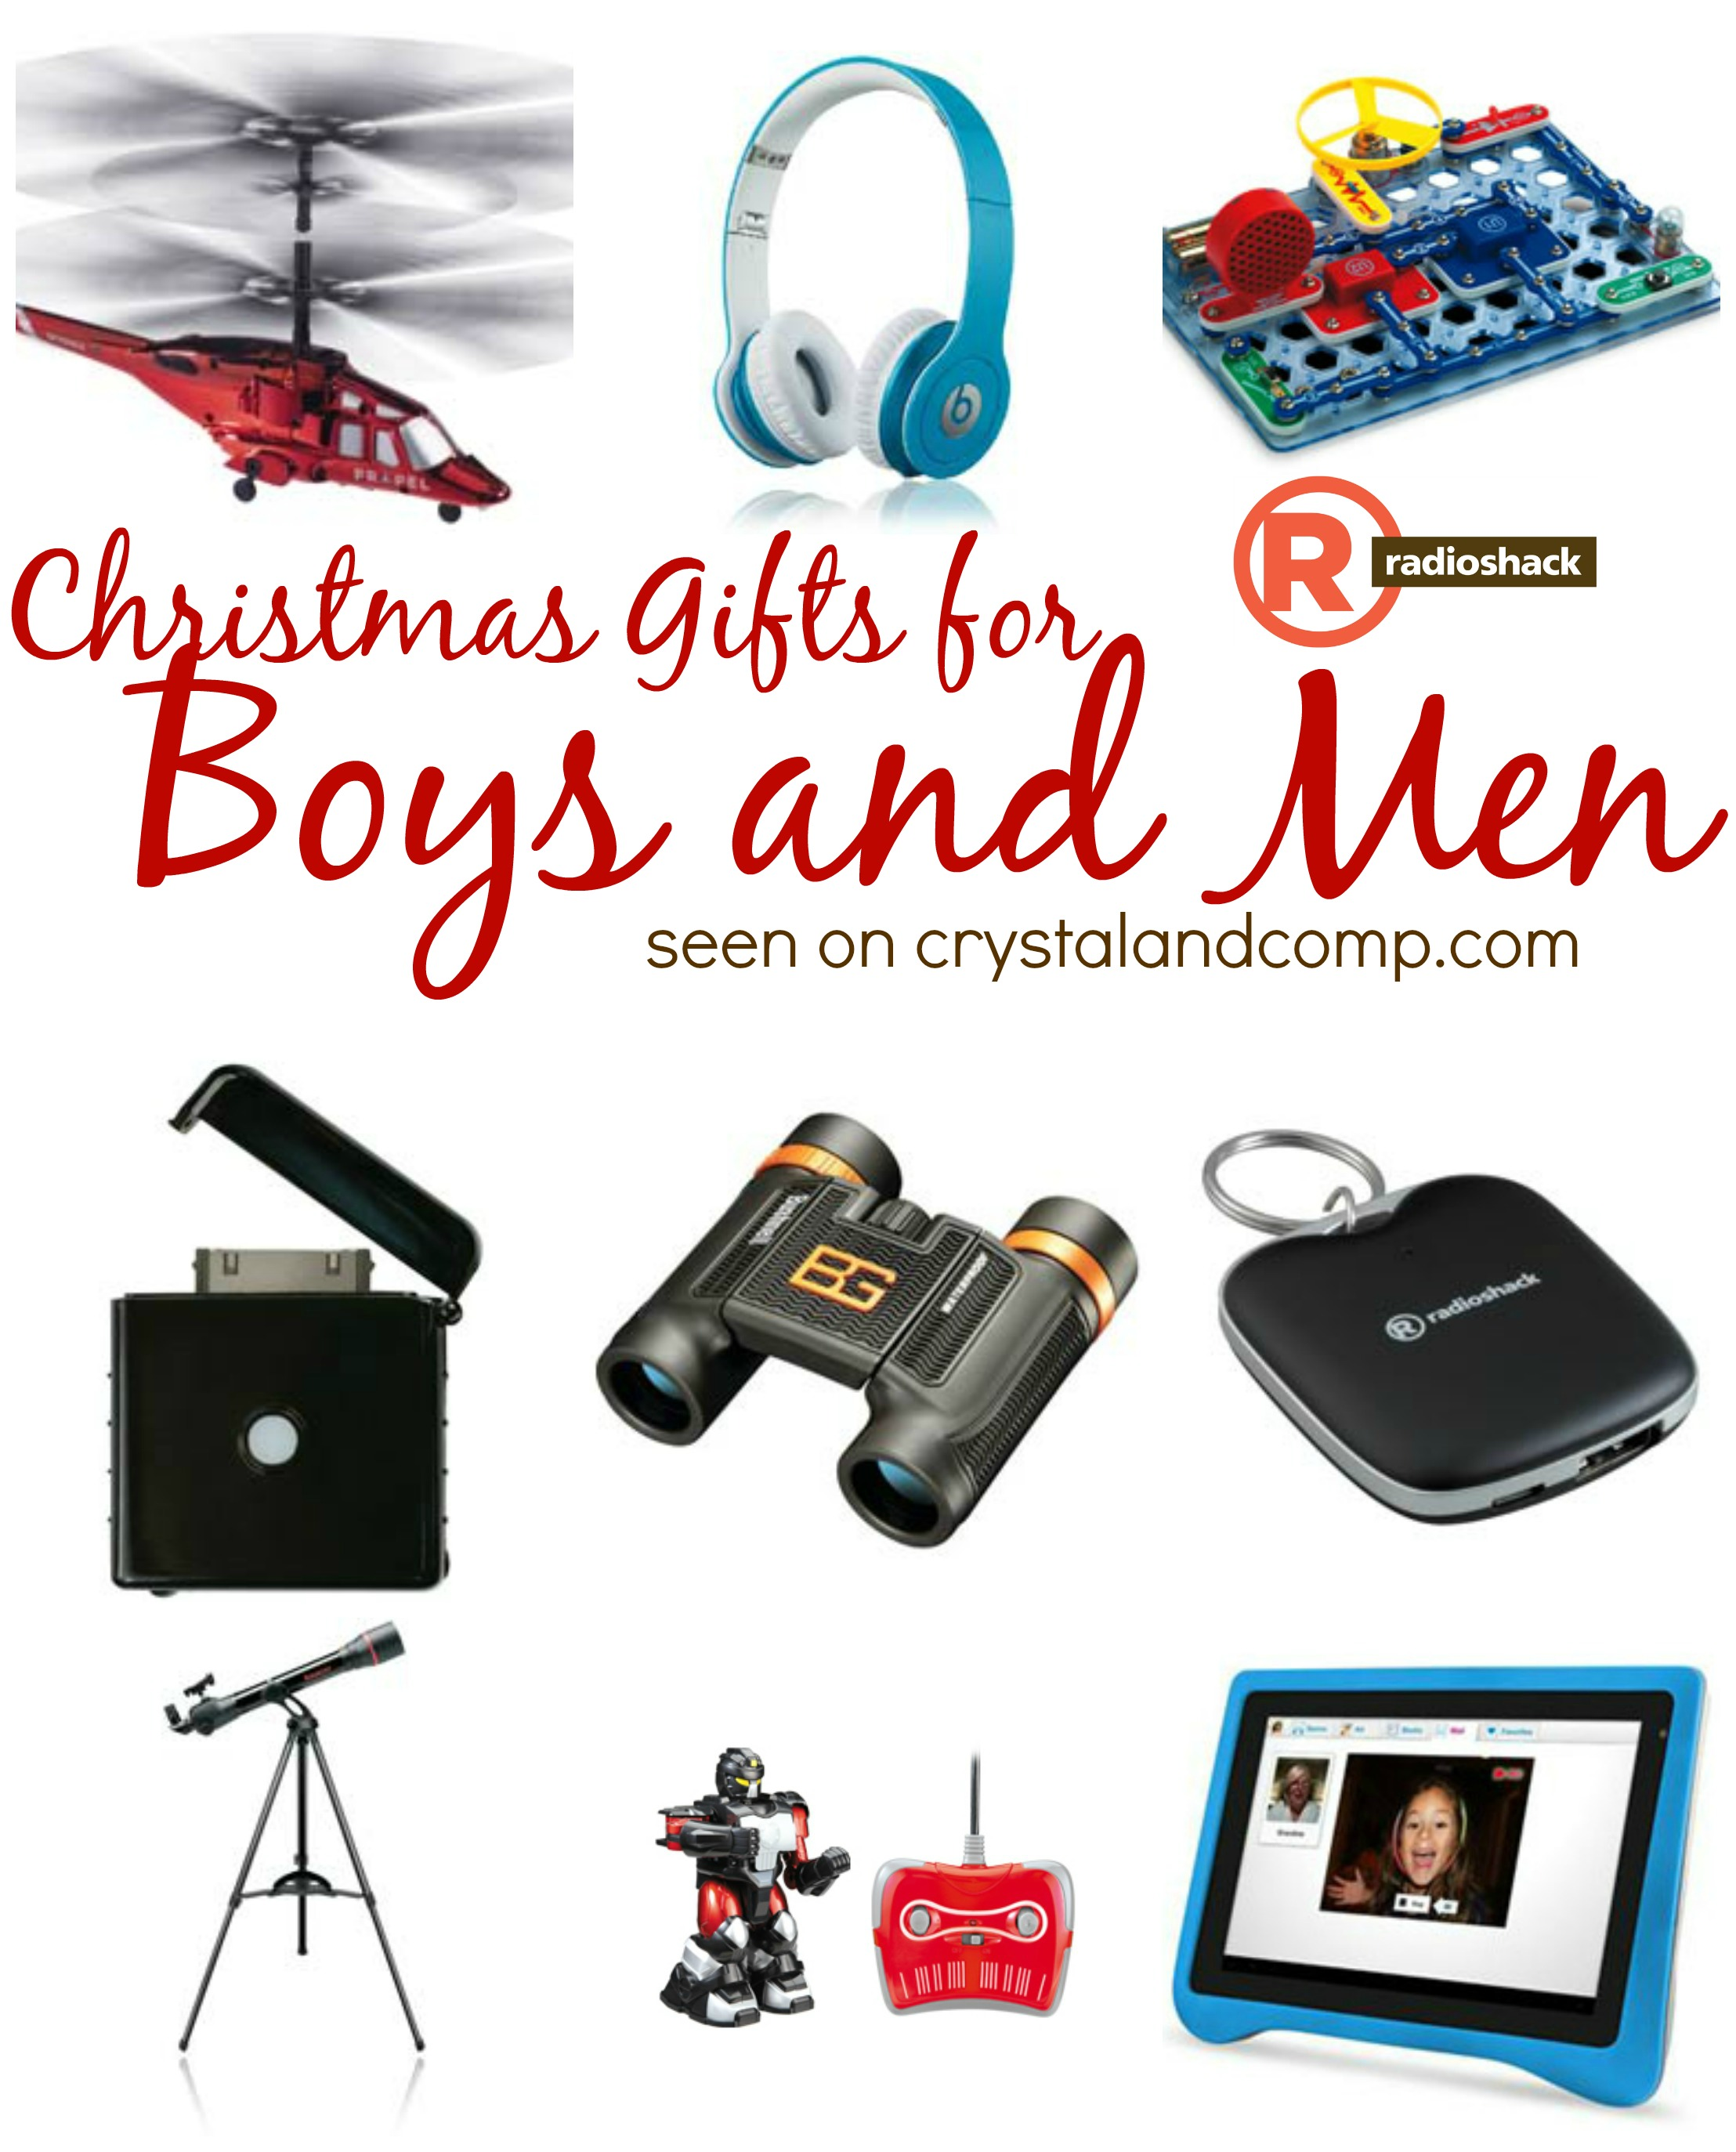 Christmas Toys For Boys : Christmas gifts for boys and men radioshack